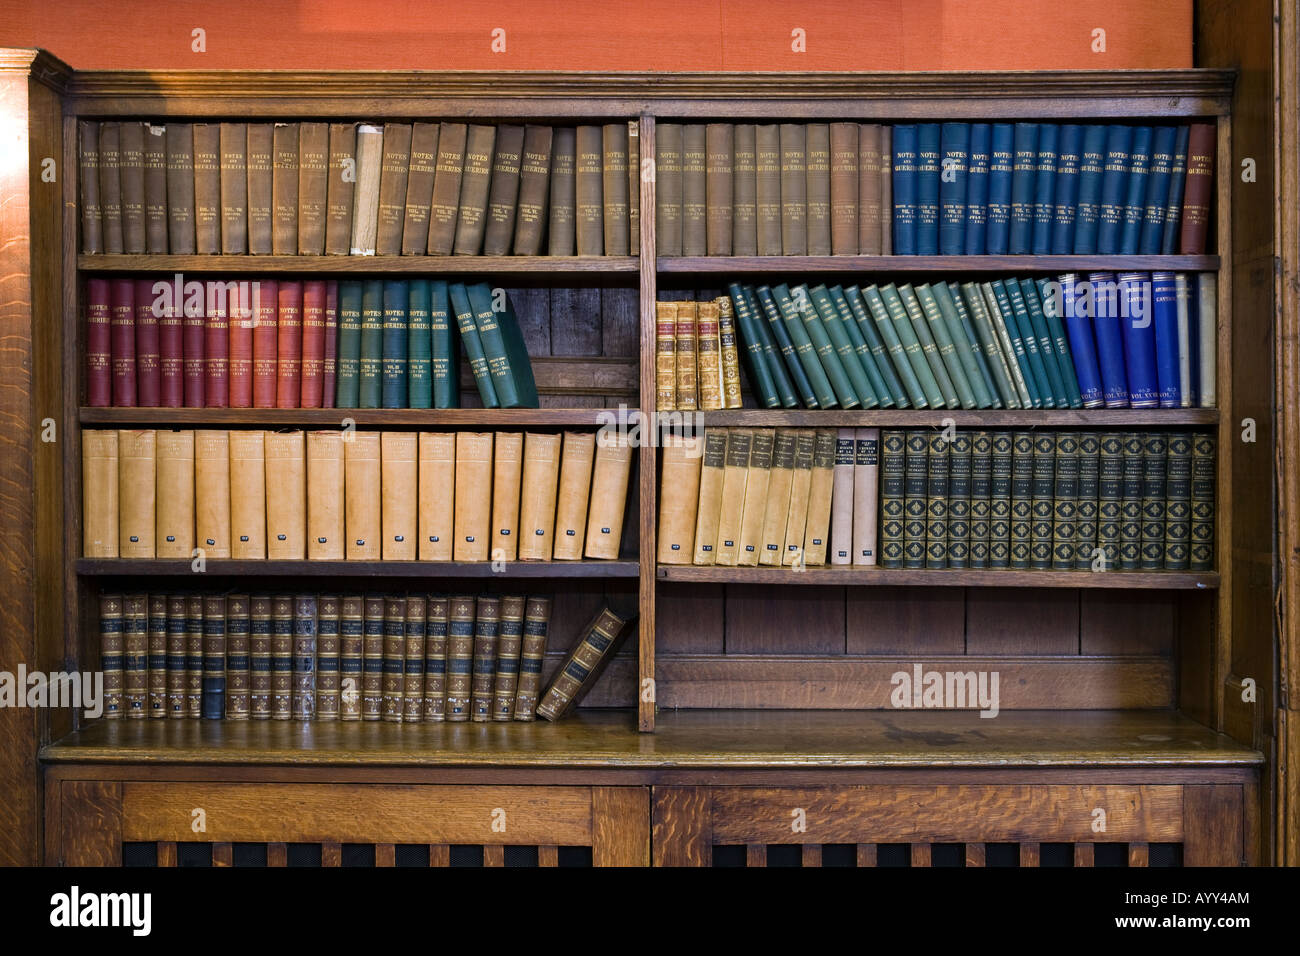 book shelves with old leather bound books - Stock Image